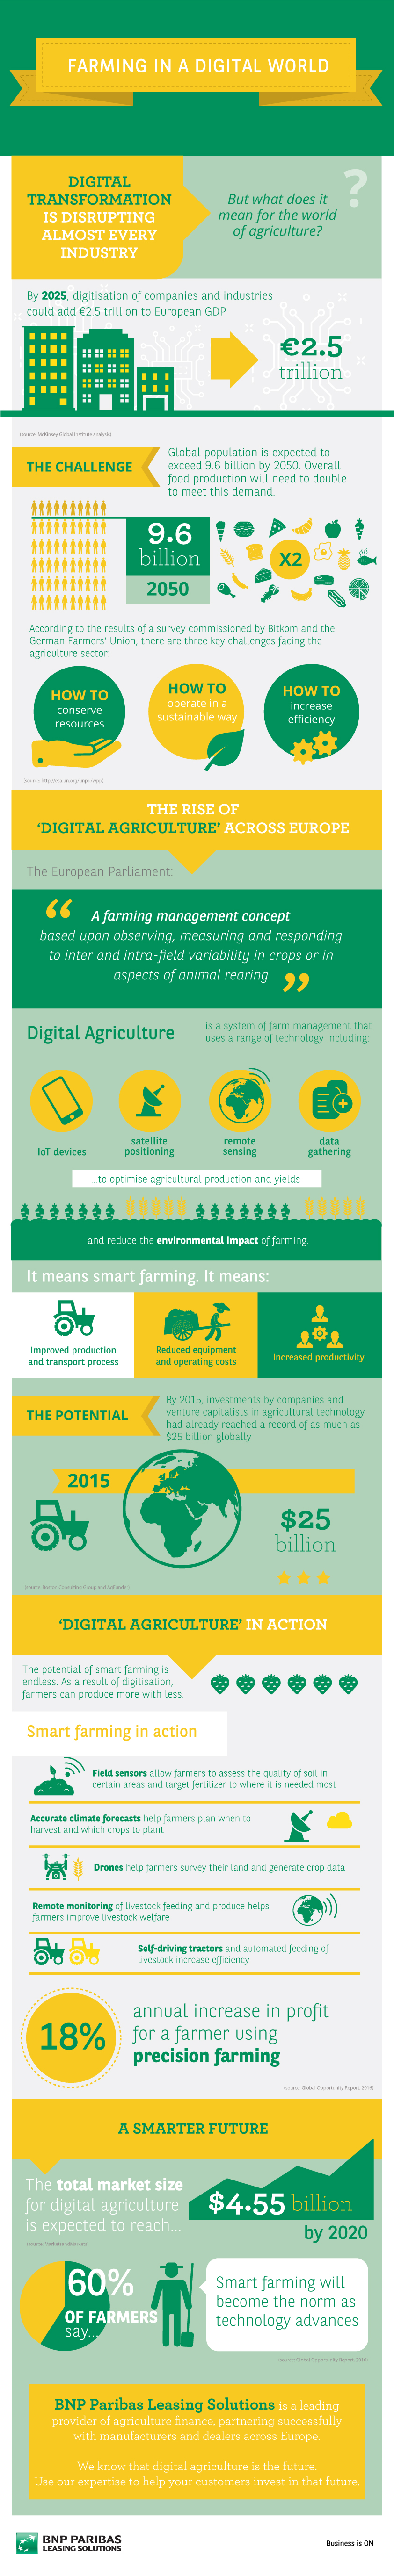 Infographics-Farming-in-a-digital-world-611x4000